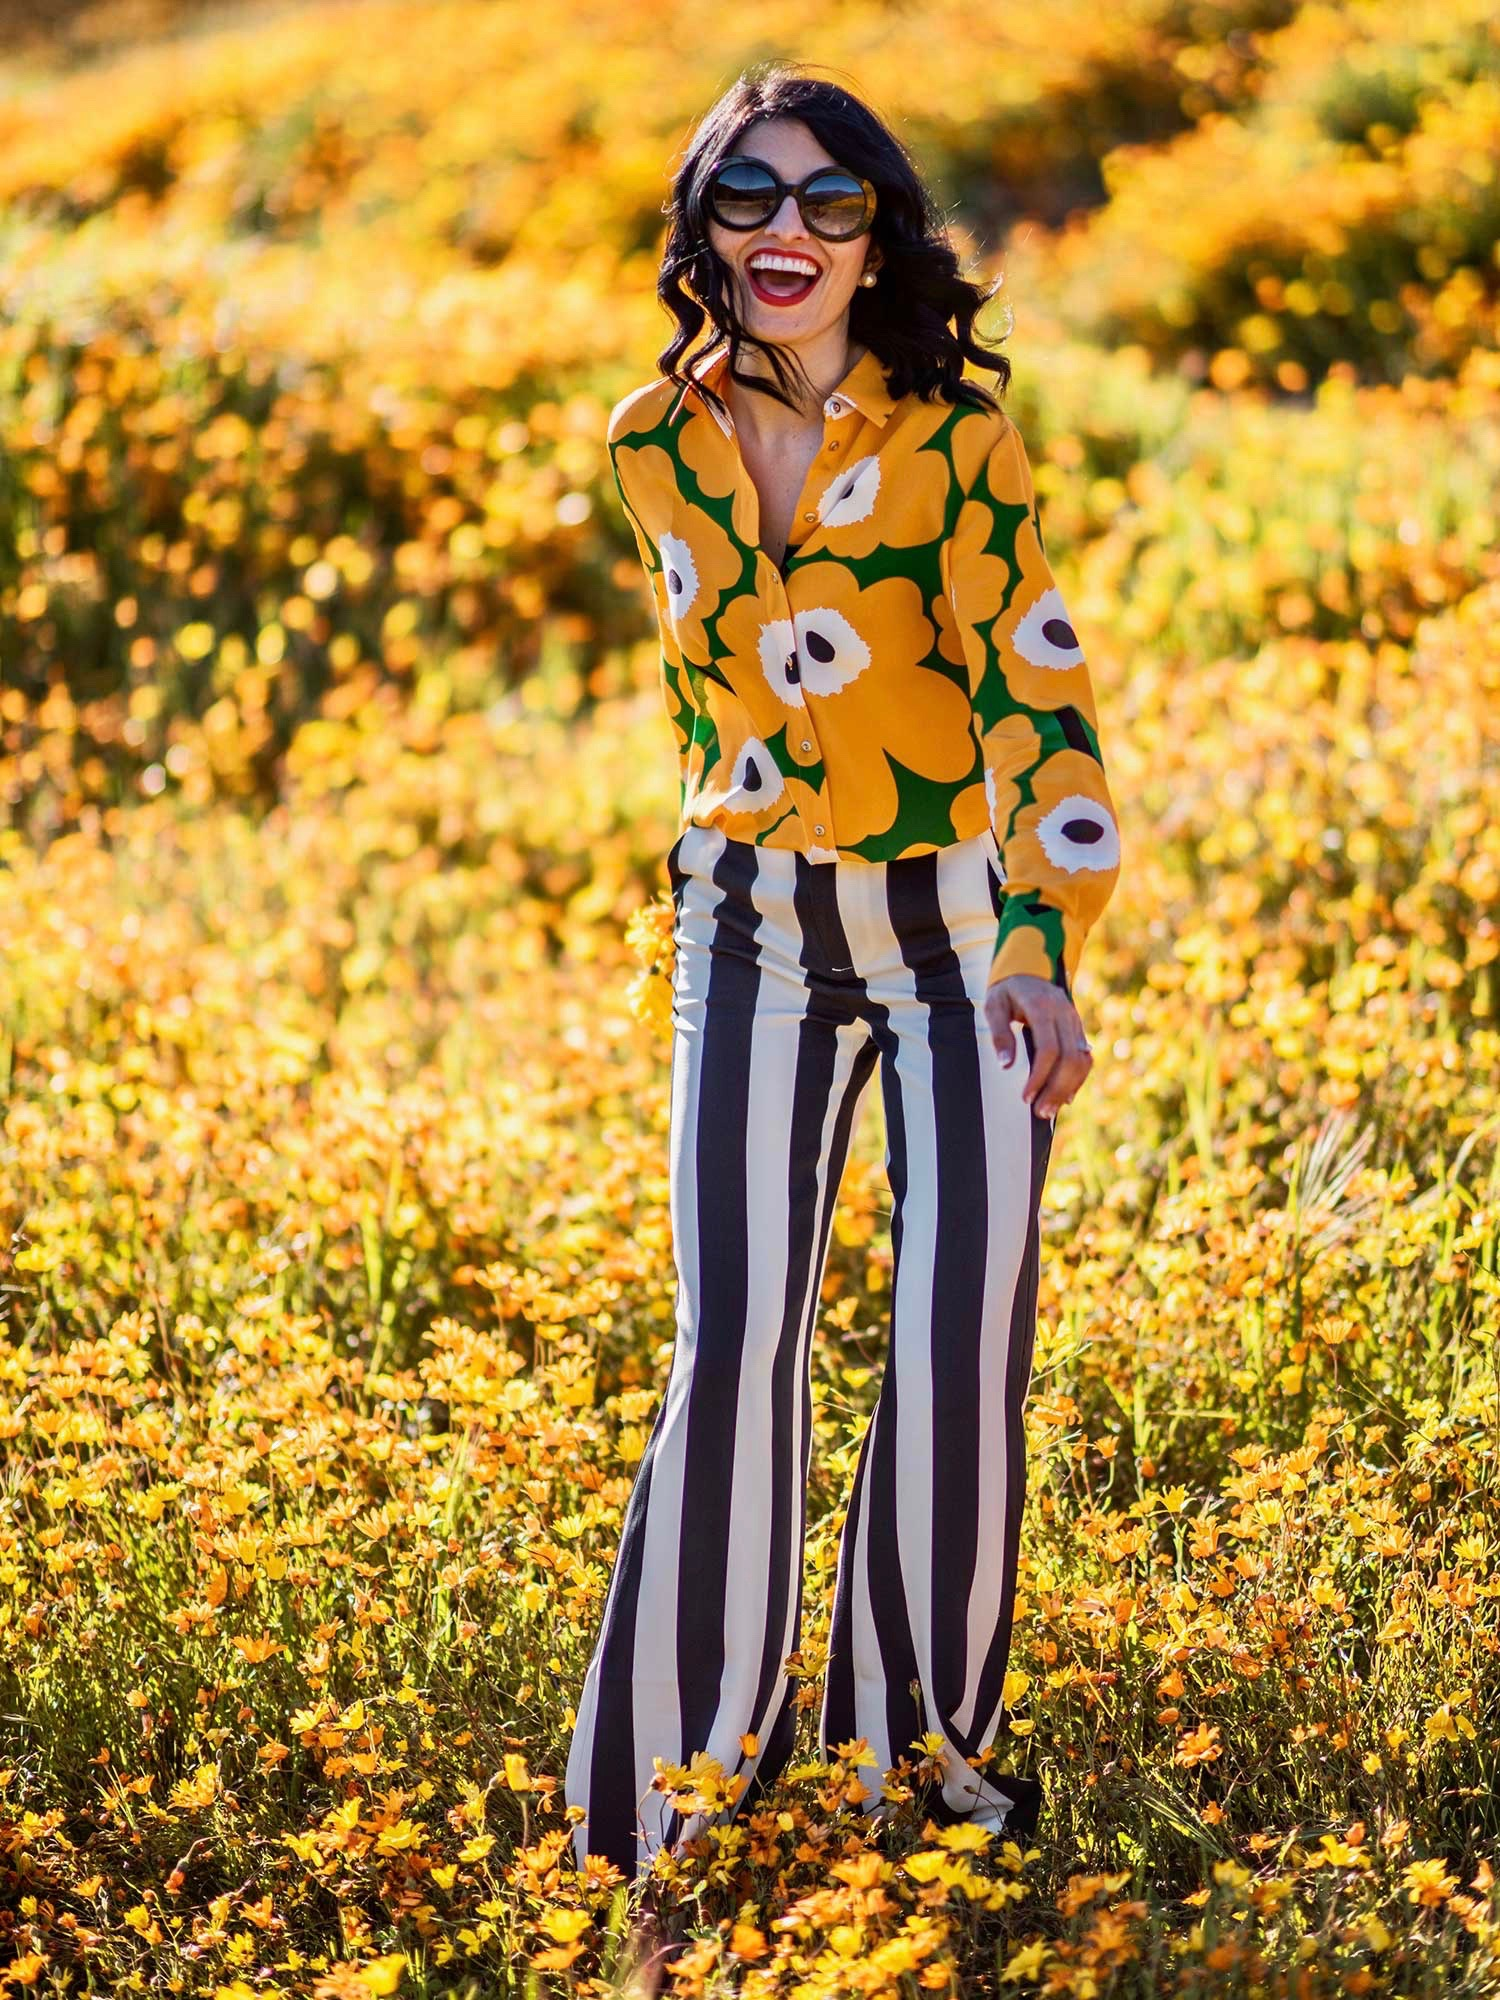 Jenna-Pilant-Style-Blogger-Lucky-Little-Mustardseed-Spring-Fashion-2017-Marimekko-Shirt-with-Alice-and-Olivia-Pants-6-2